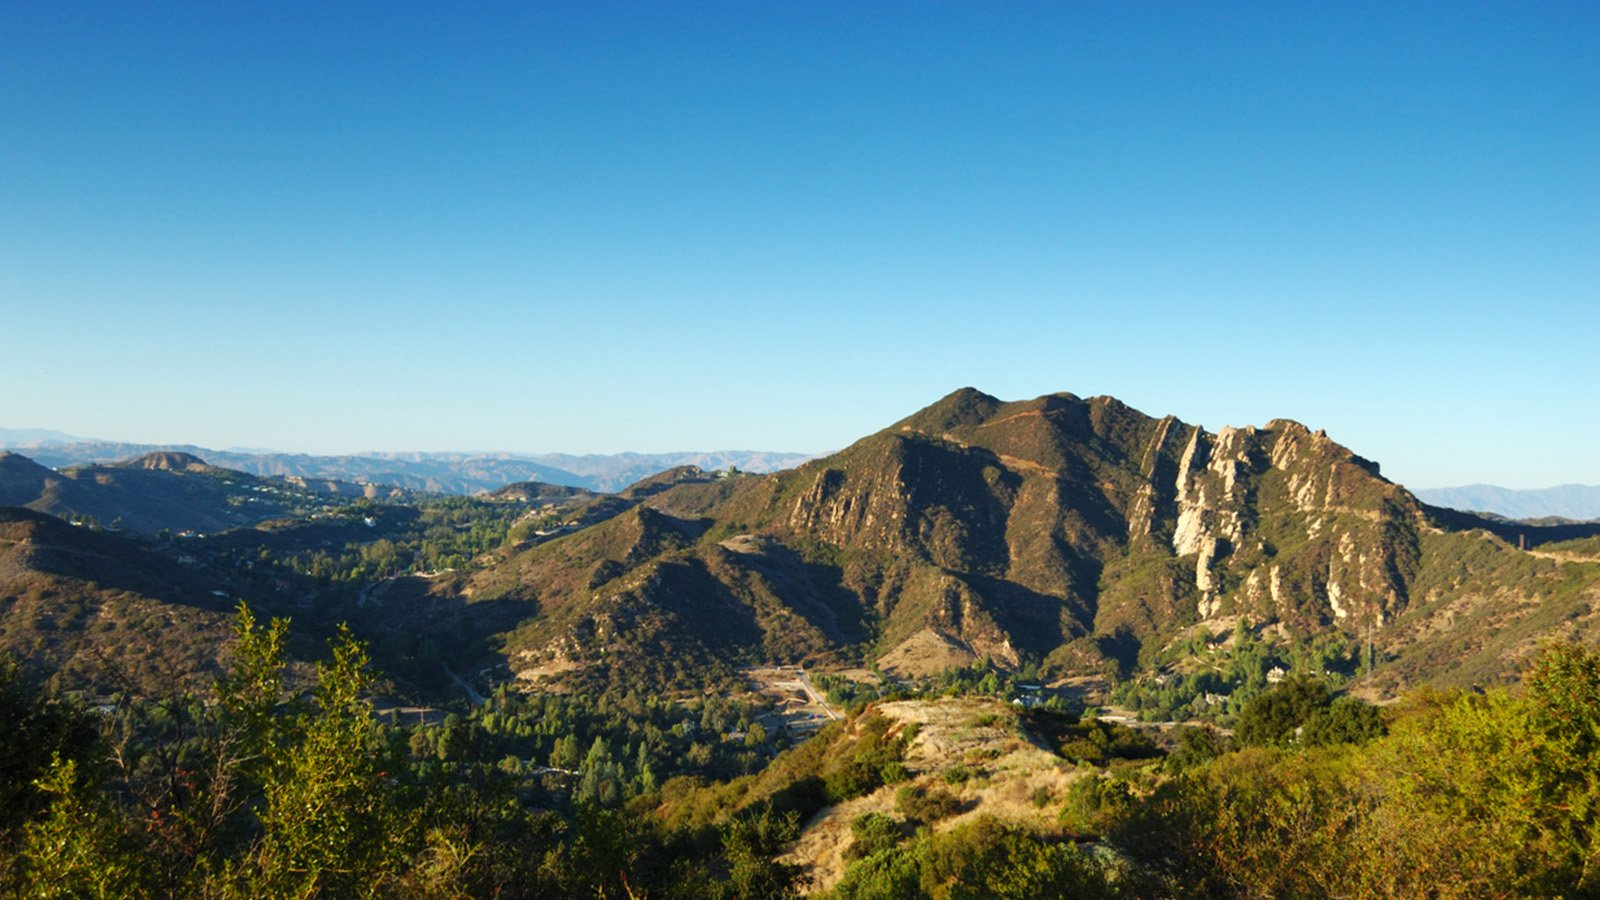 San Vicente Mountain Park